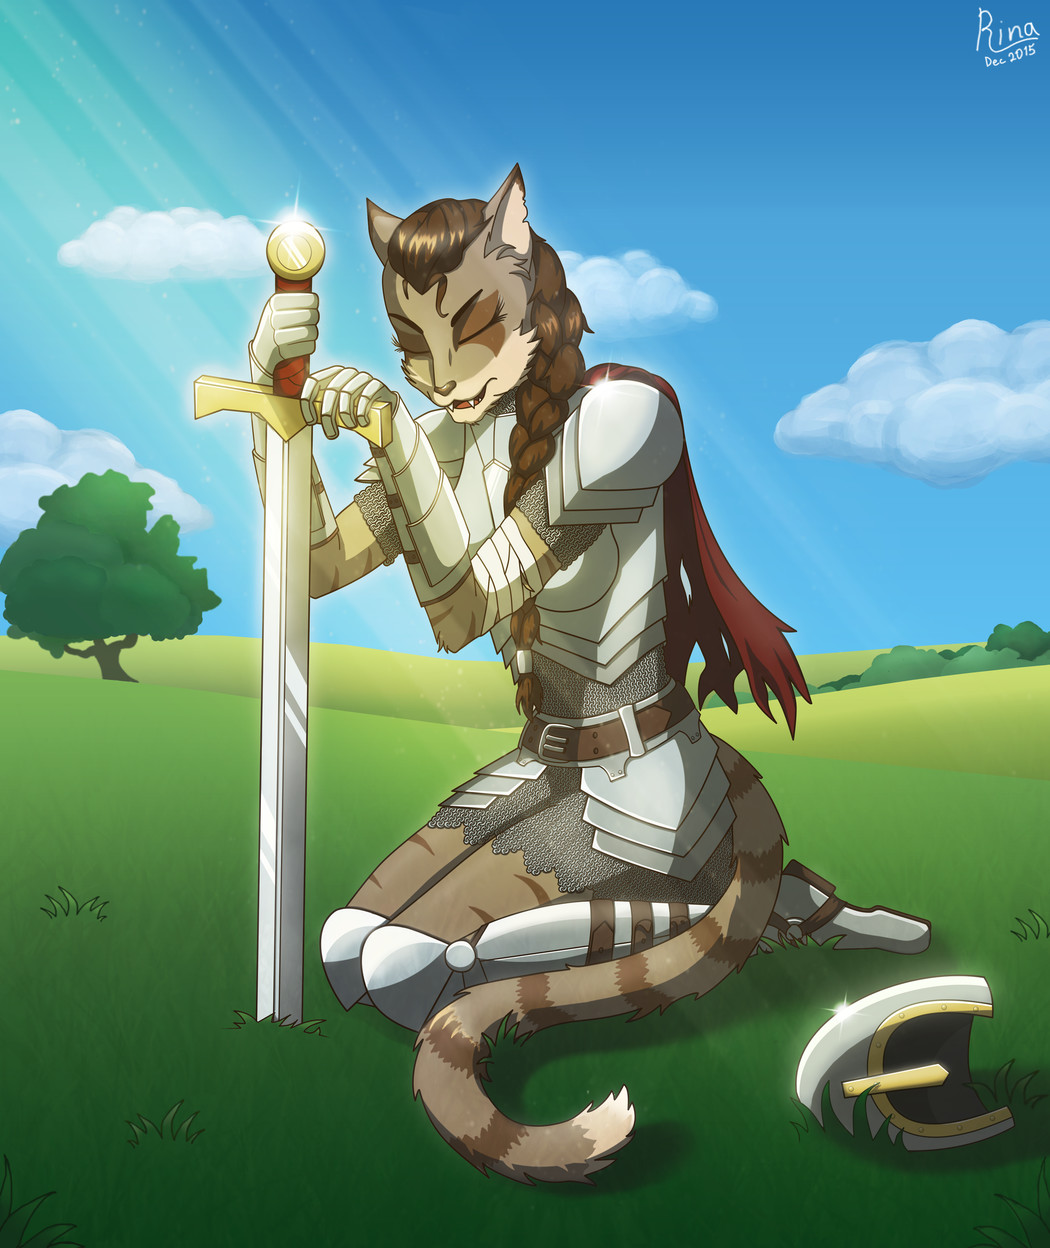 Furry knight (2015)